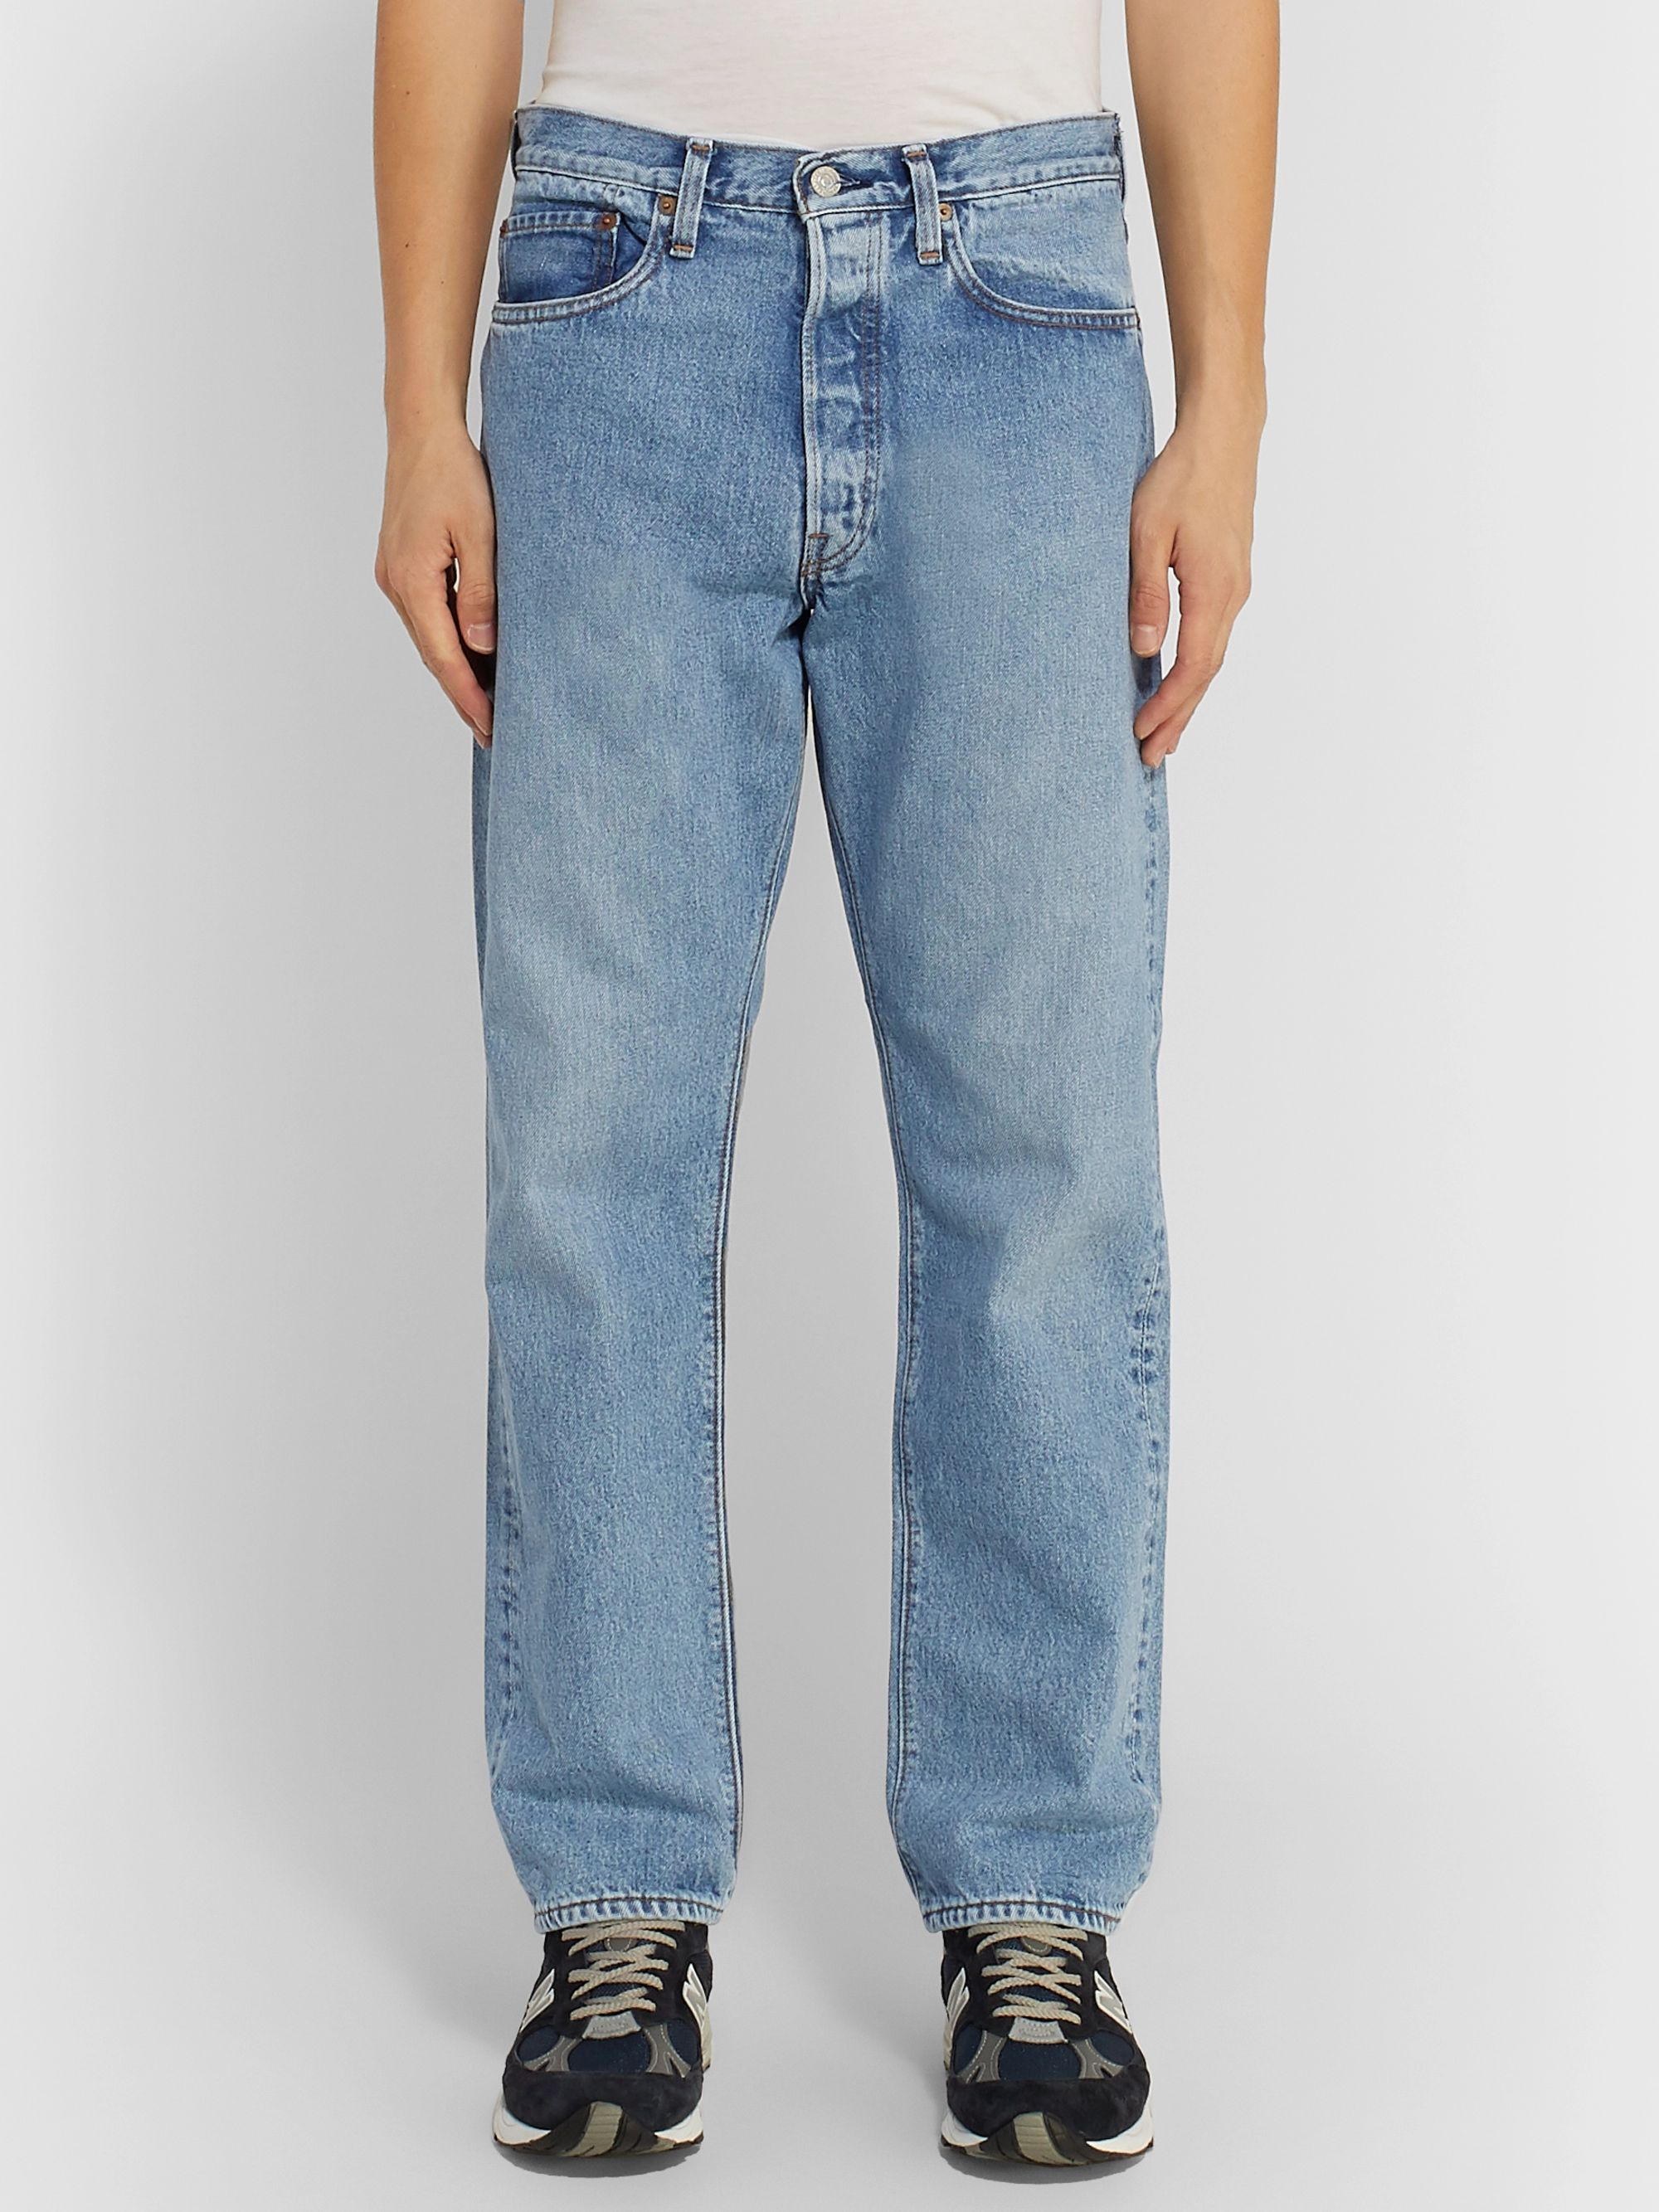 OrSlow 105 Denim Jeans